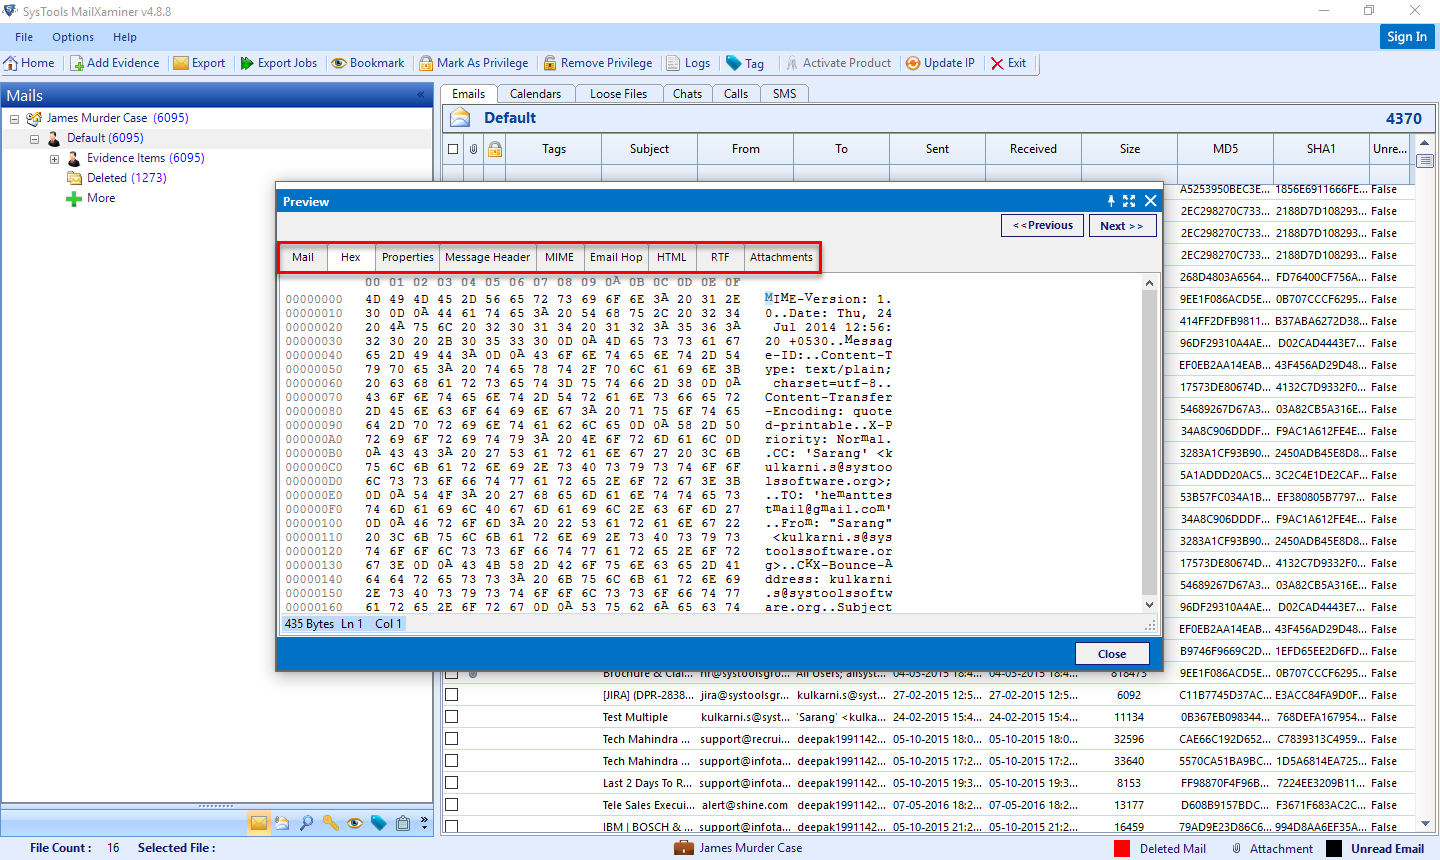 view analysis of eml file